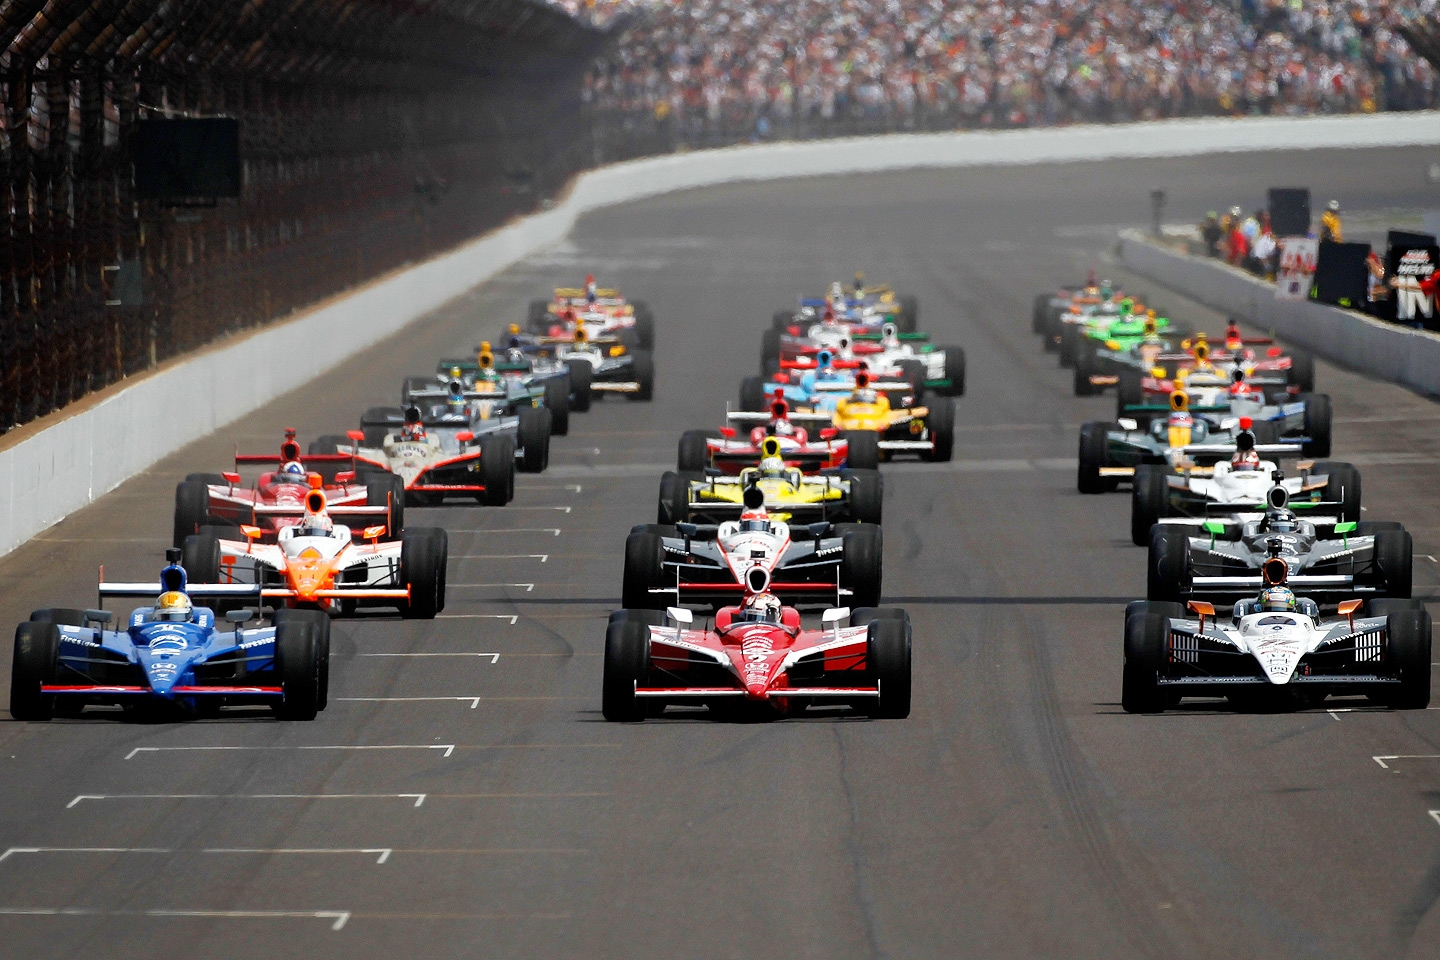 Indy 500- Indianapolis 500 (@indy500race) Cover Image